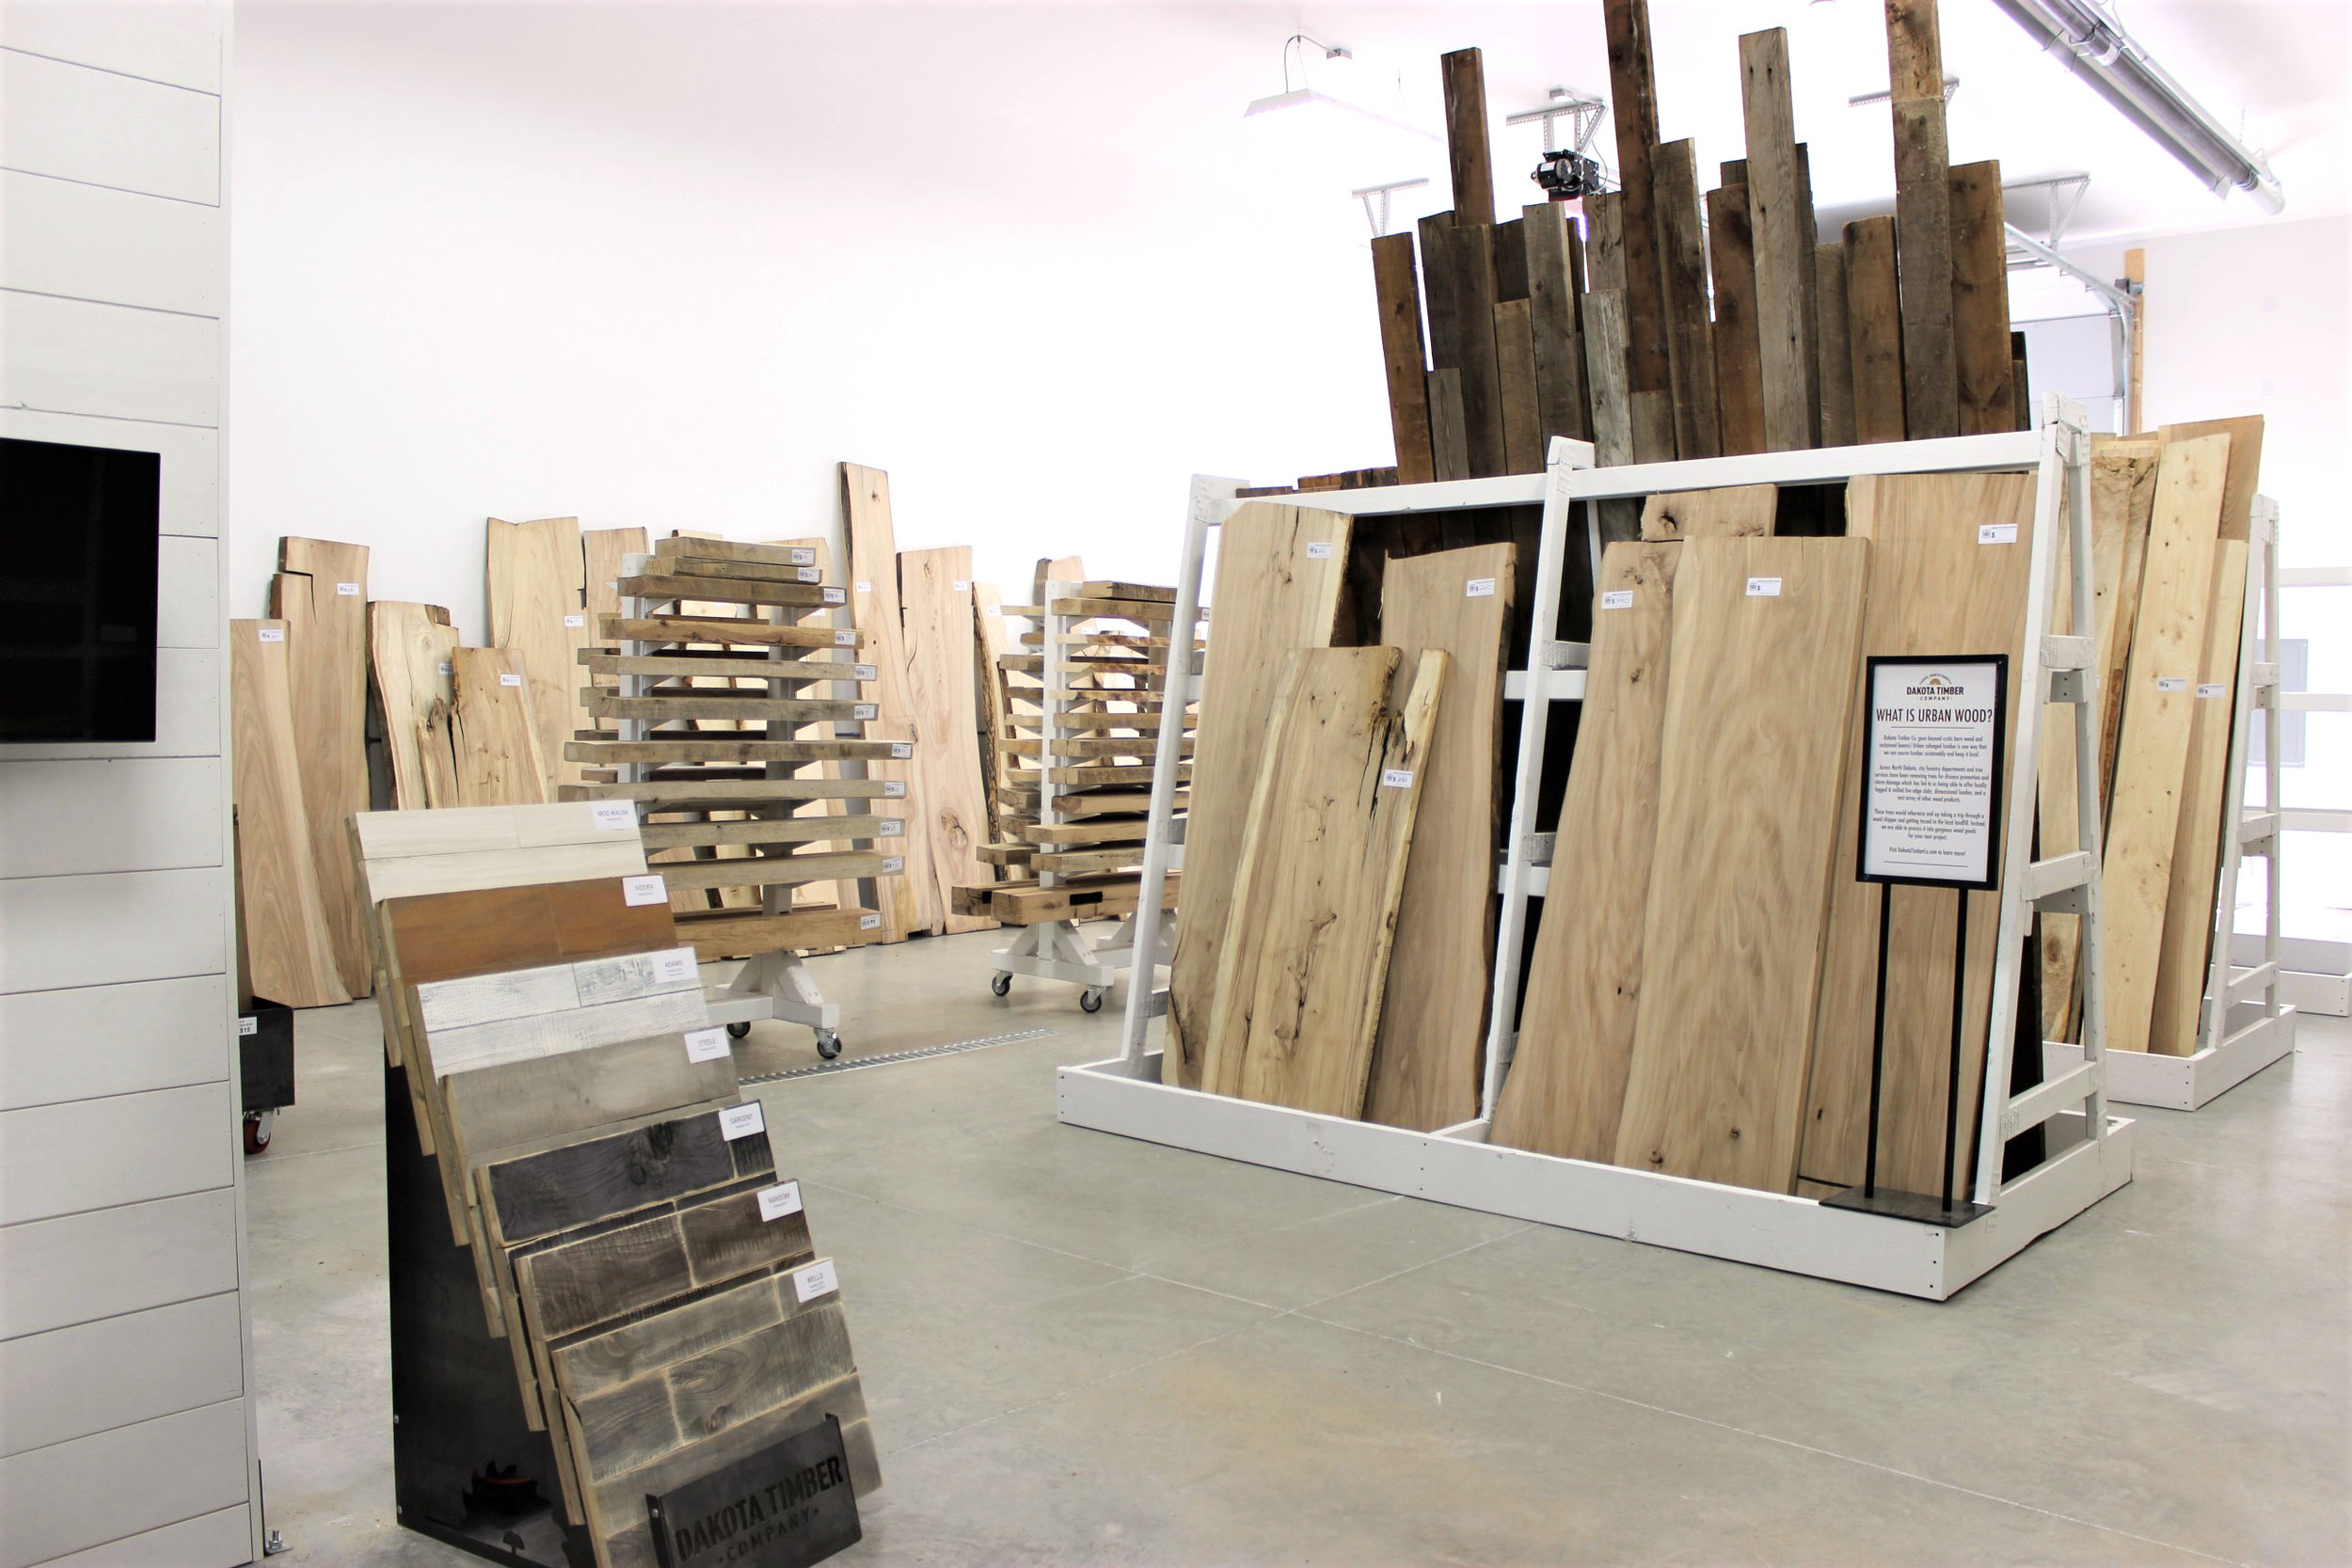 Ready to browse and buy reclaimed lumber, slabs, shelves, mantels, and more!